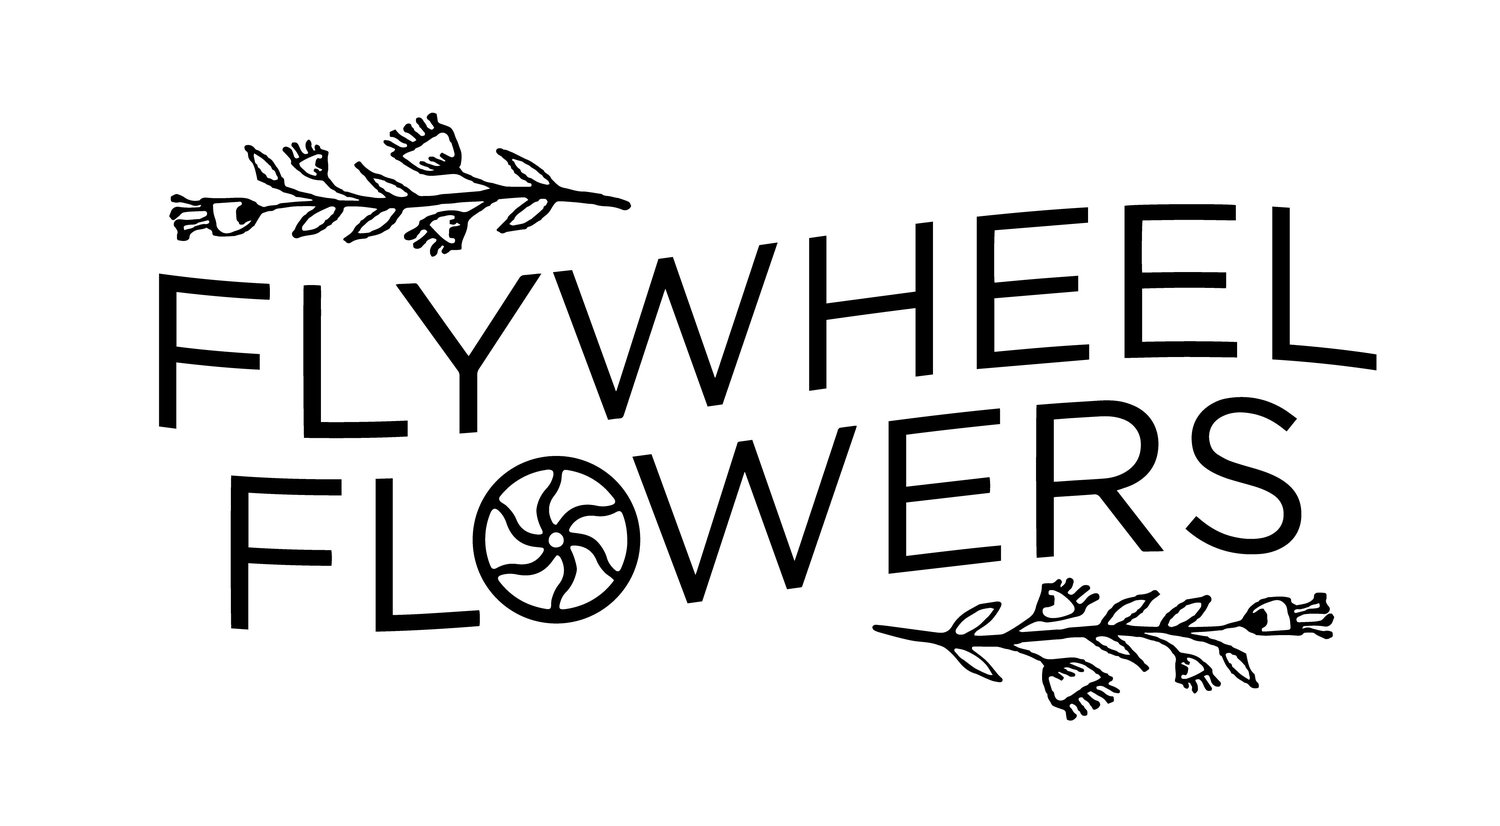 Flywheel Flowers